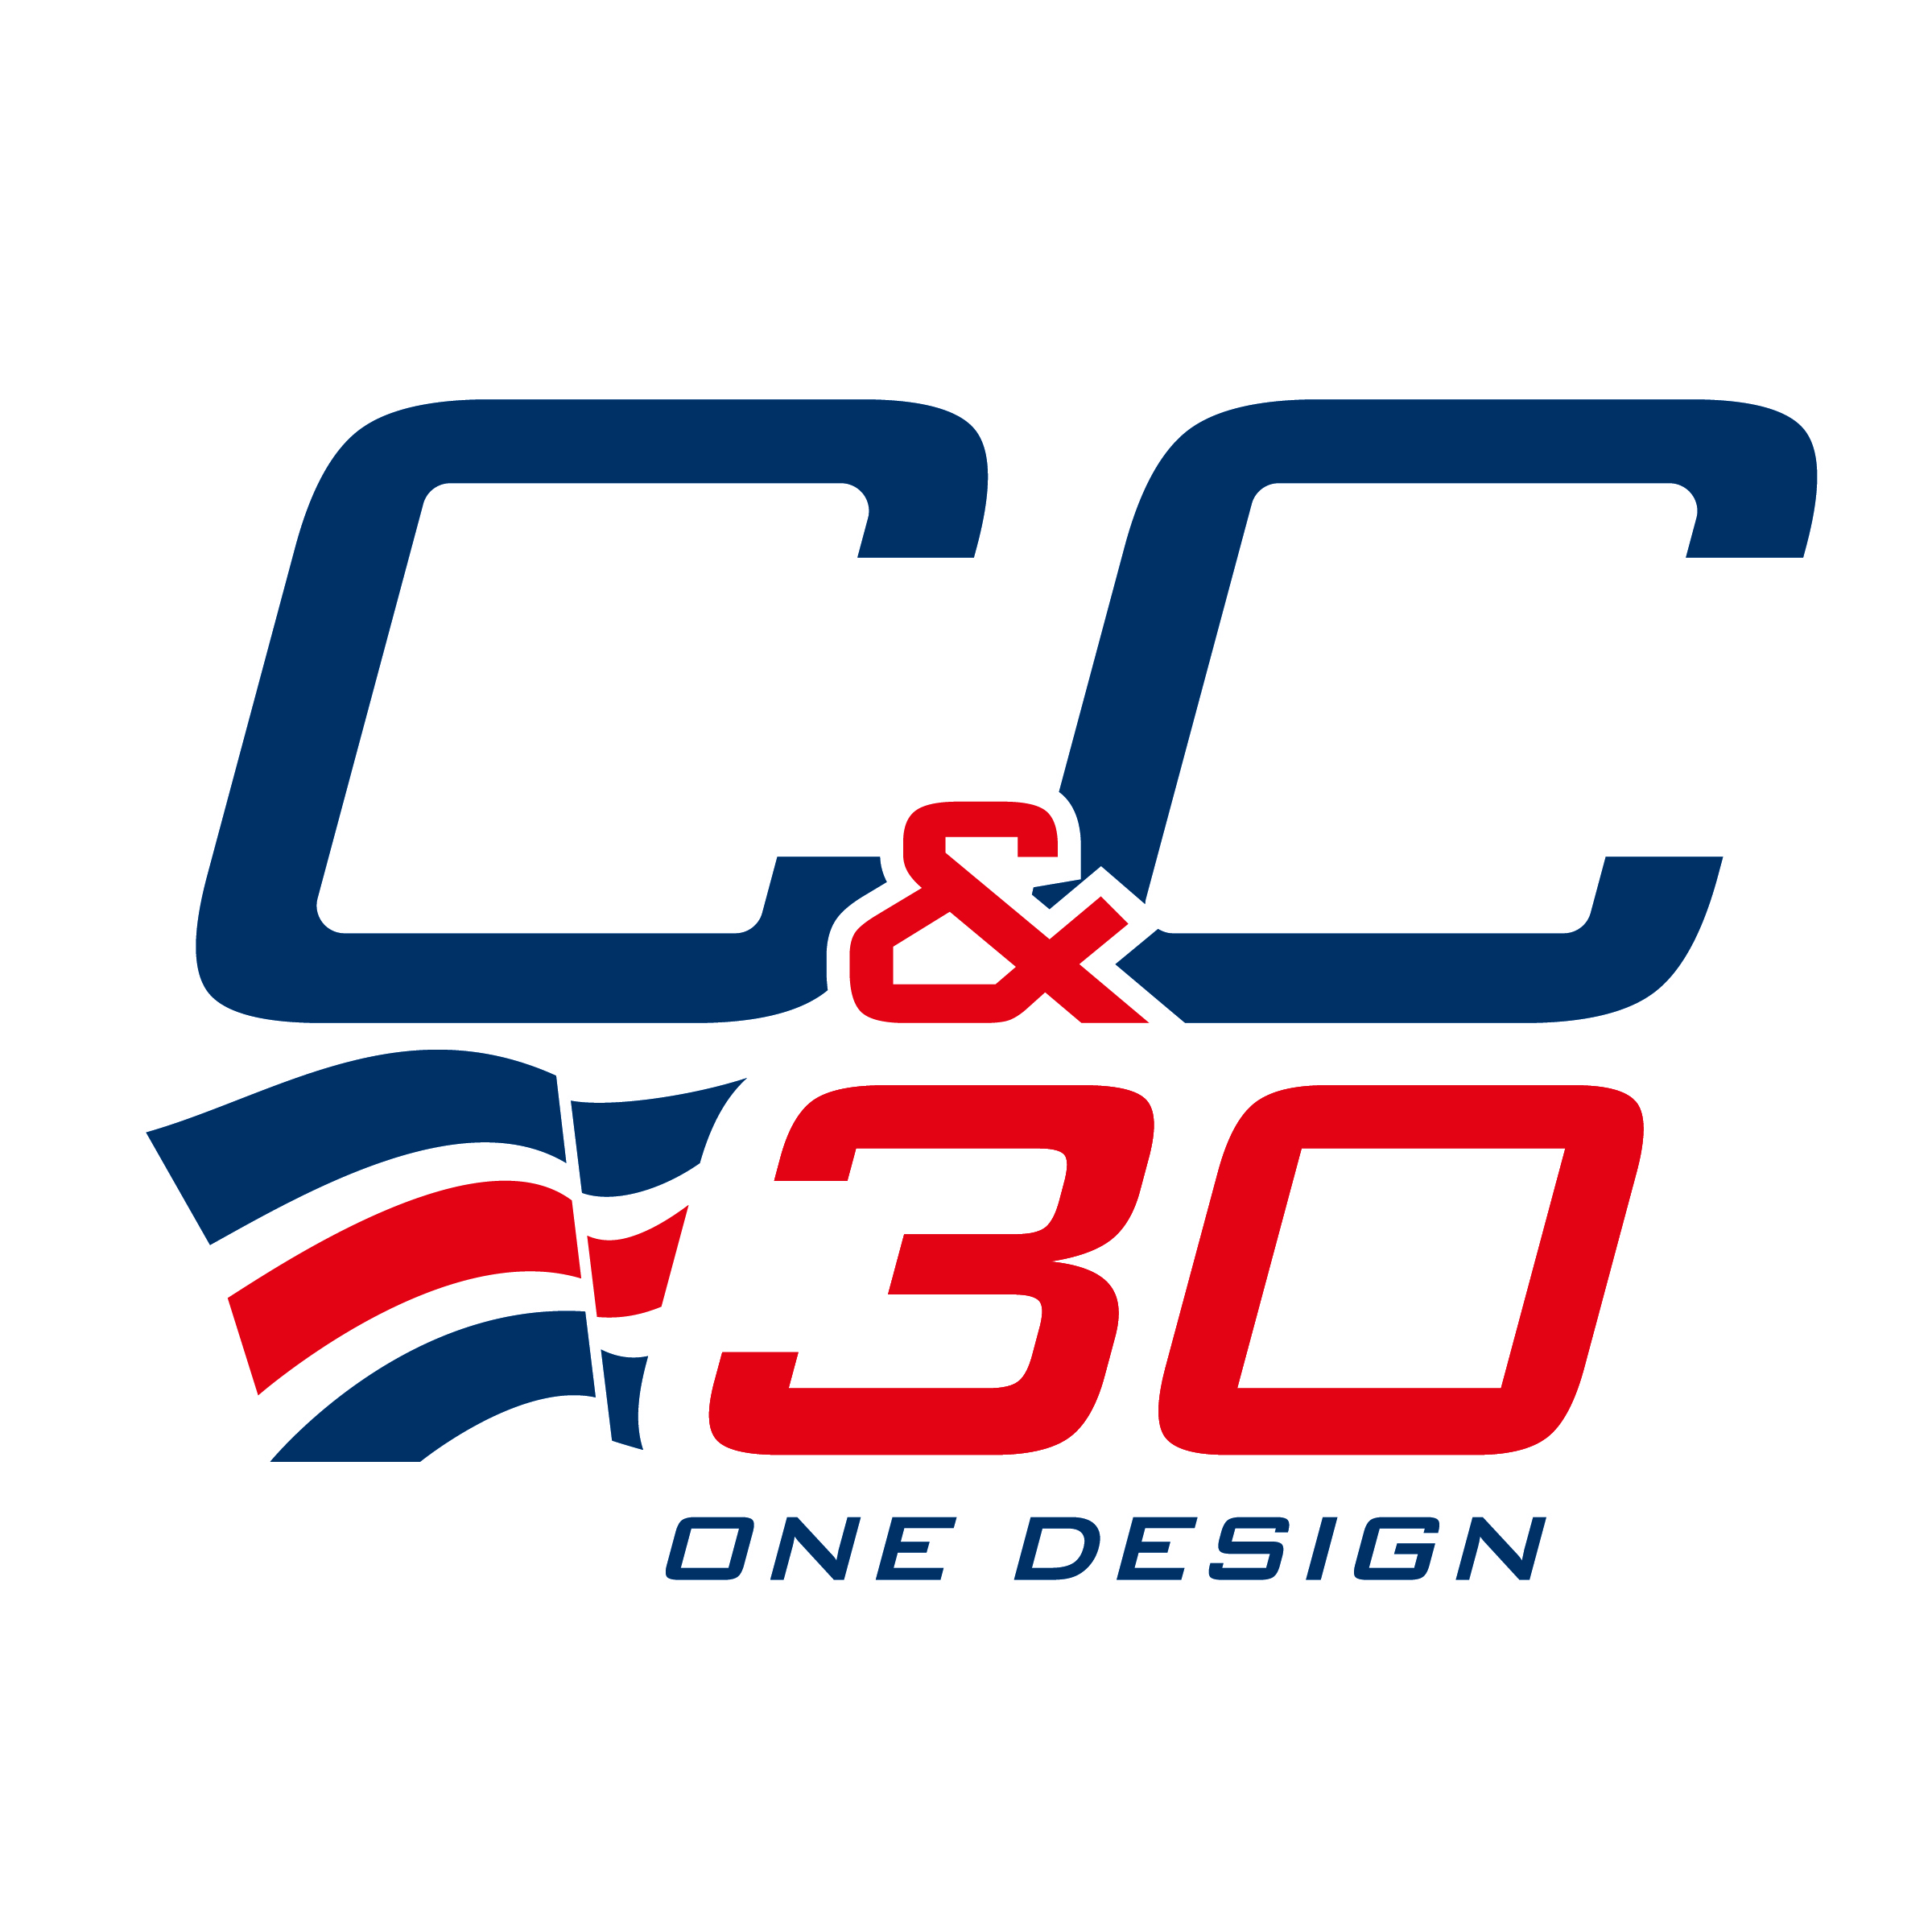 C&C Yachts - 30 One Design - Logo Added to Other Products